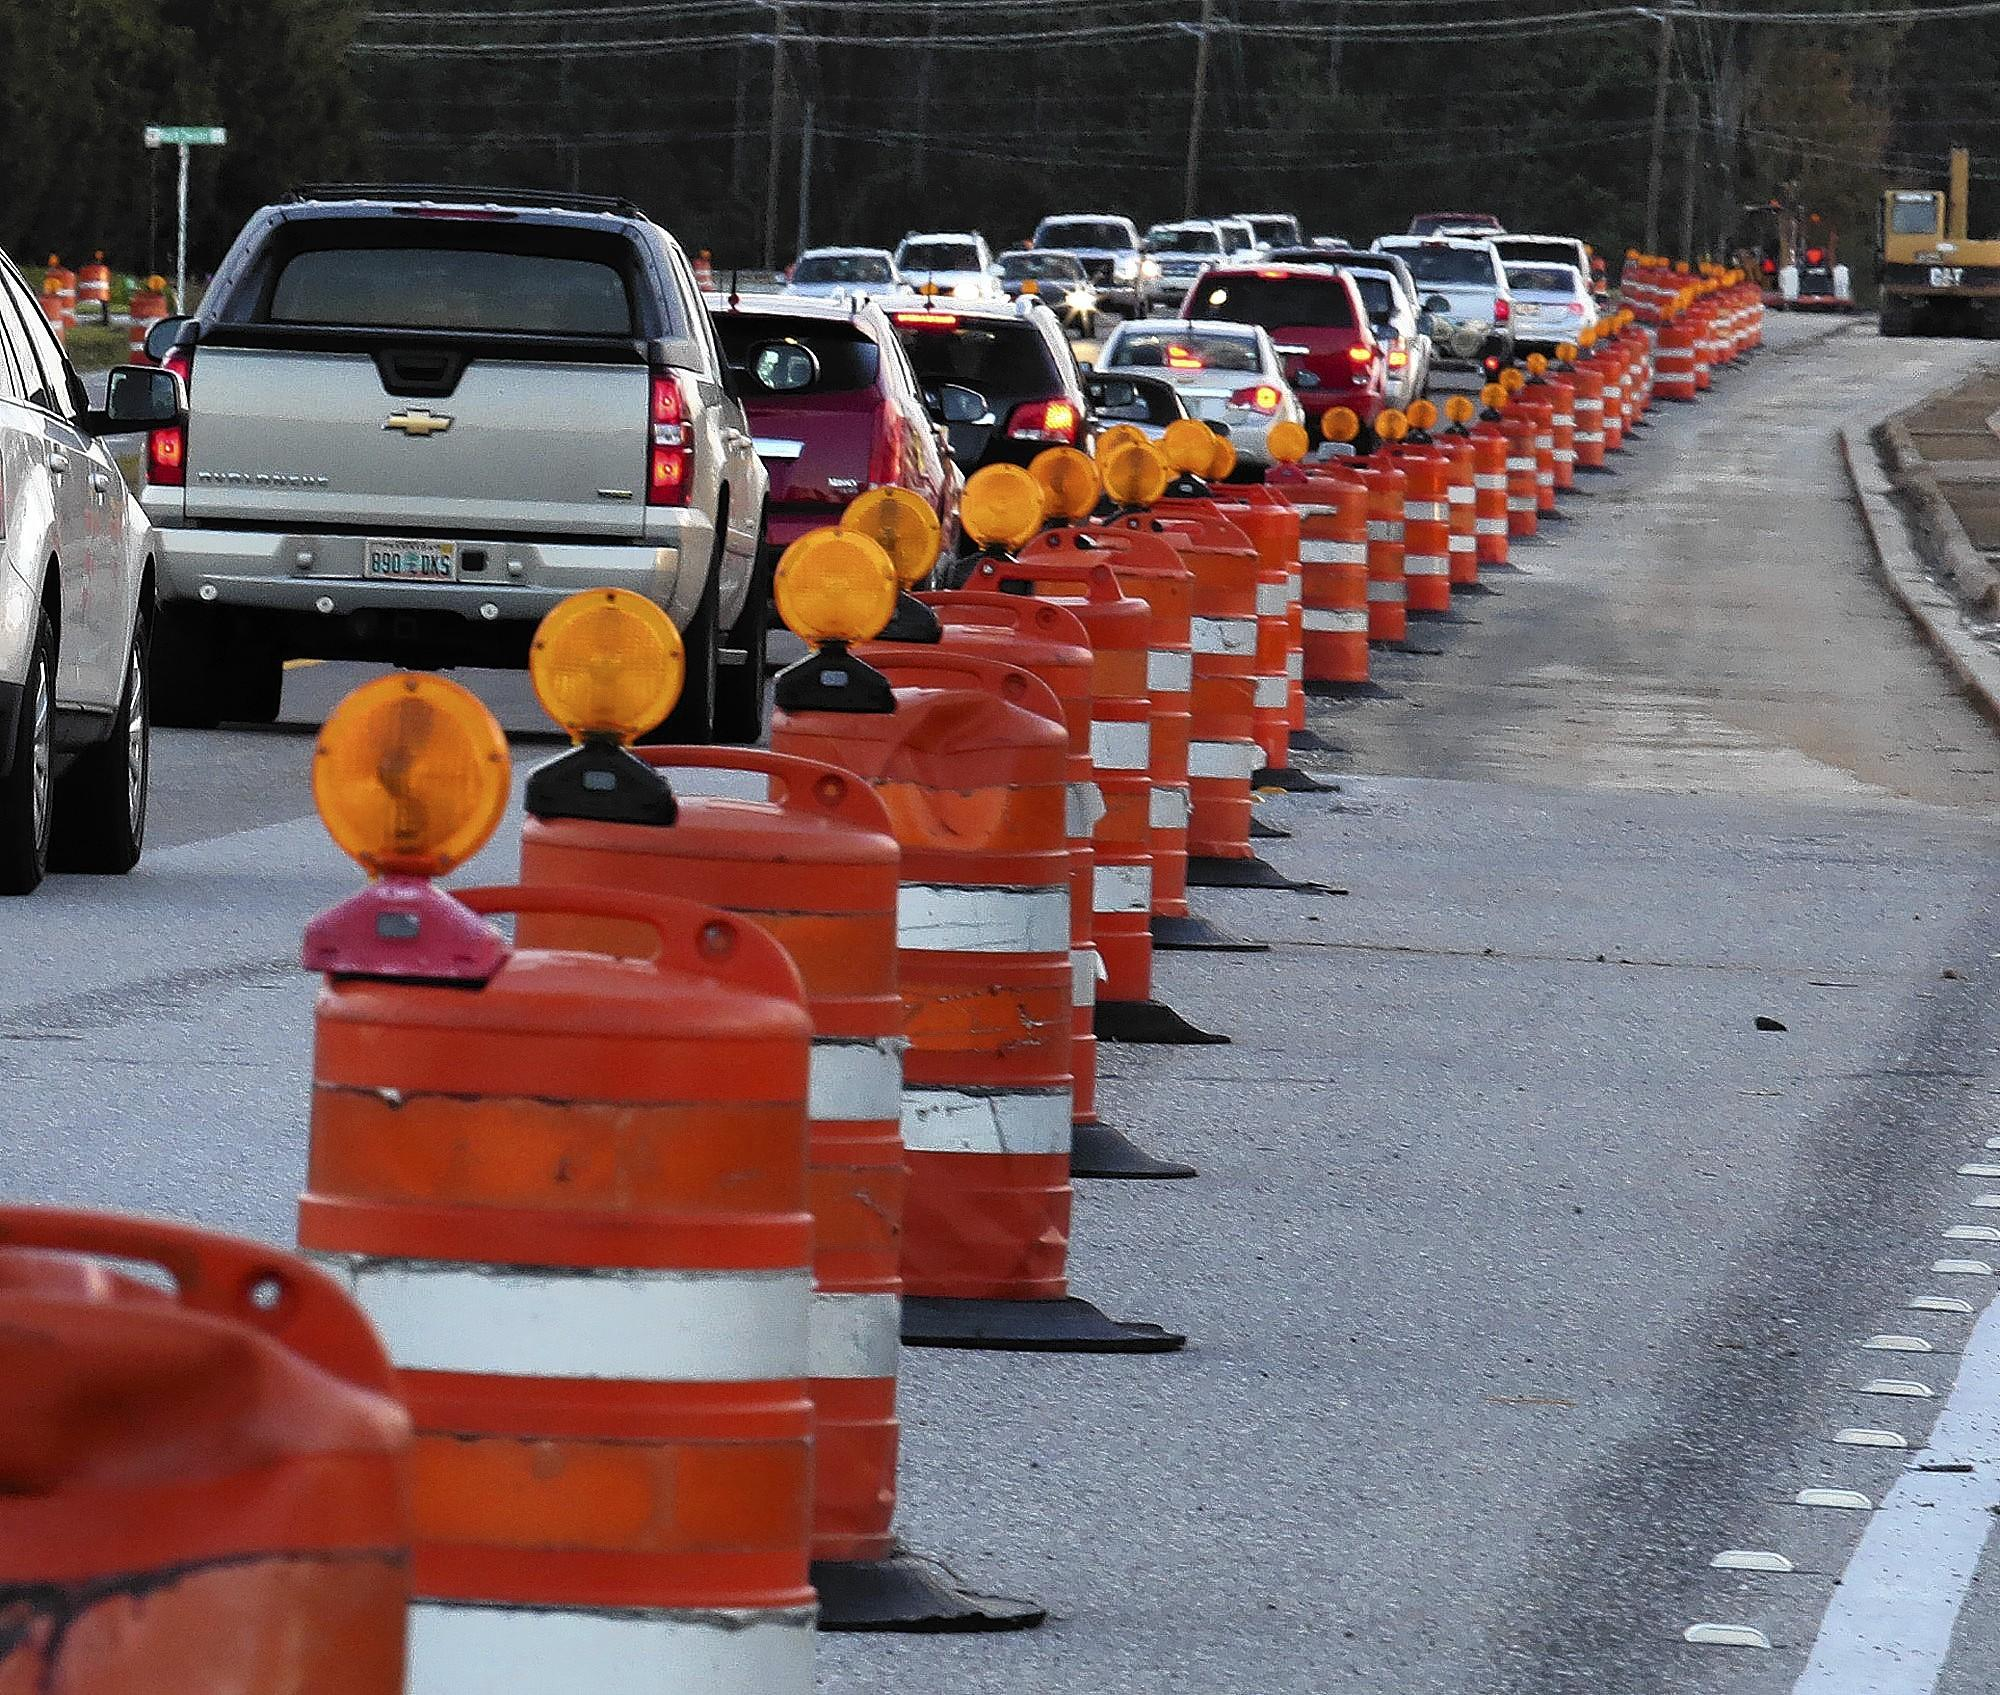 Traffic drives southbound through a construction zone on Alafaya Trail south of the 408 on Friday, January 10, 2014.